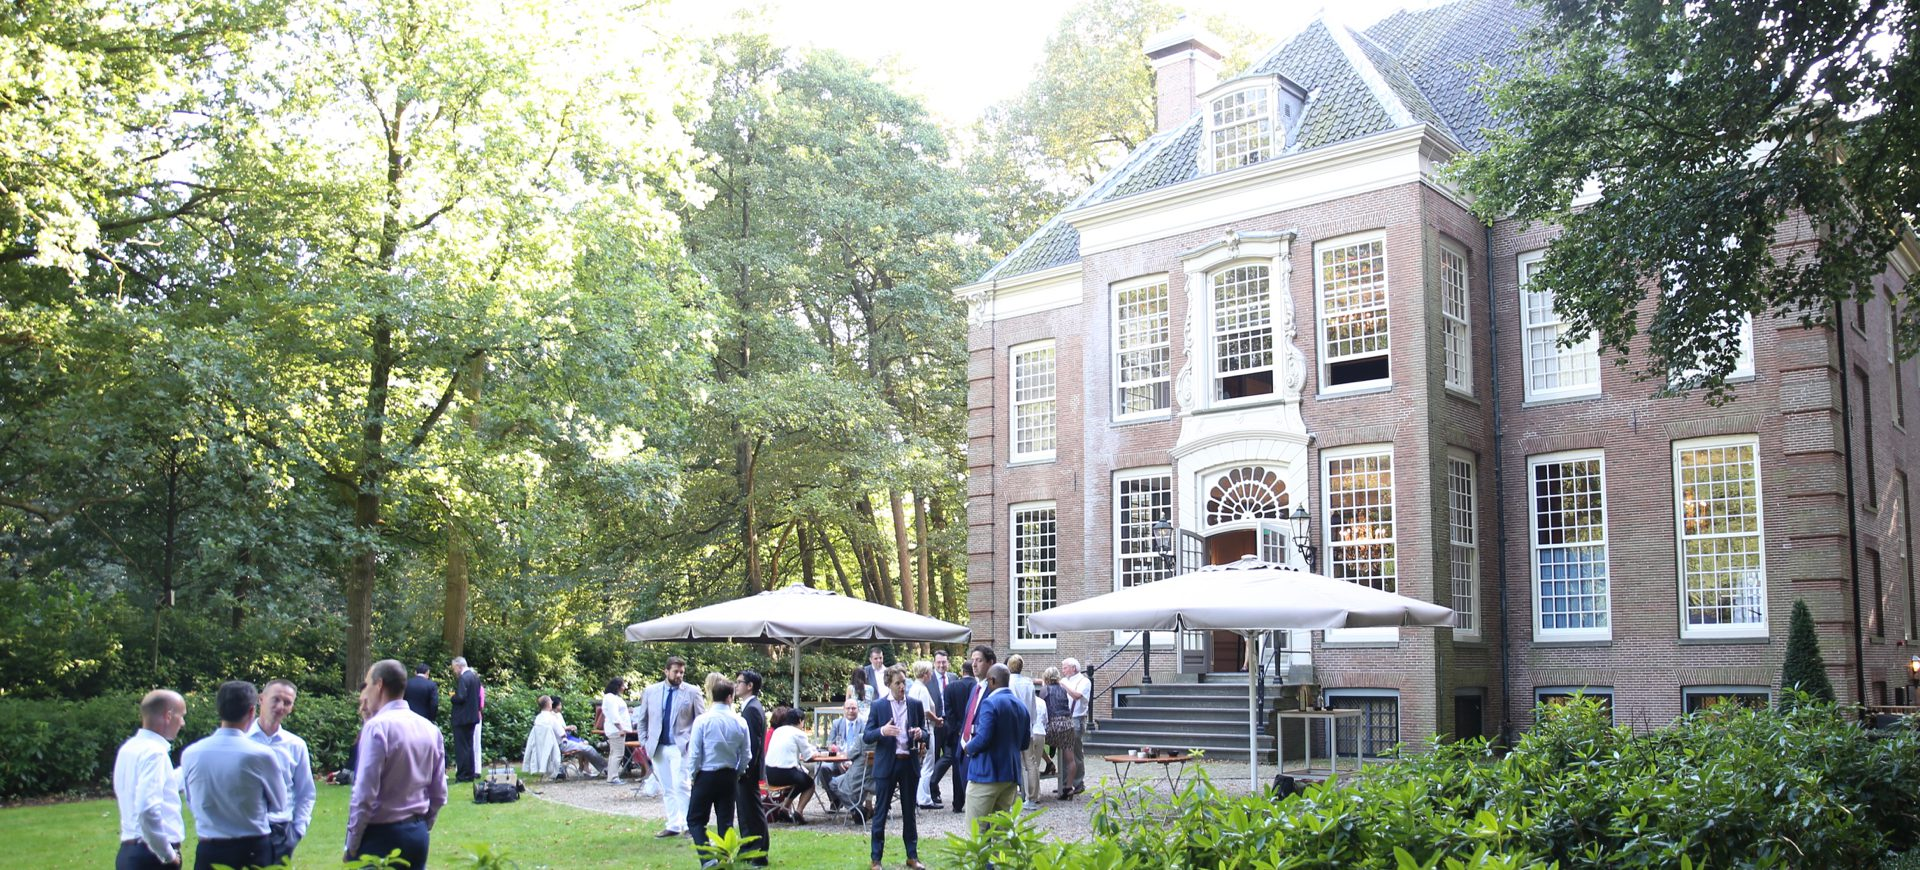 borrel-tuin-sparrendaal